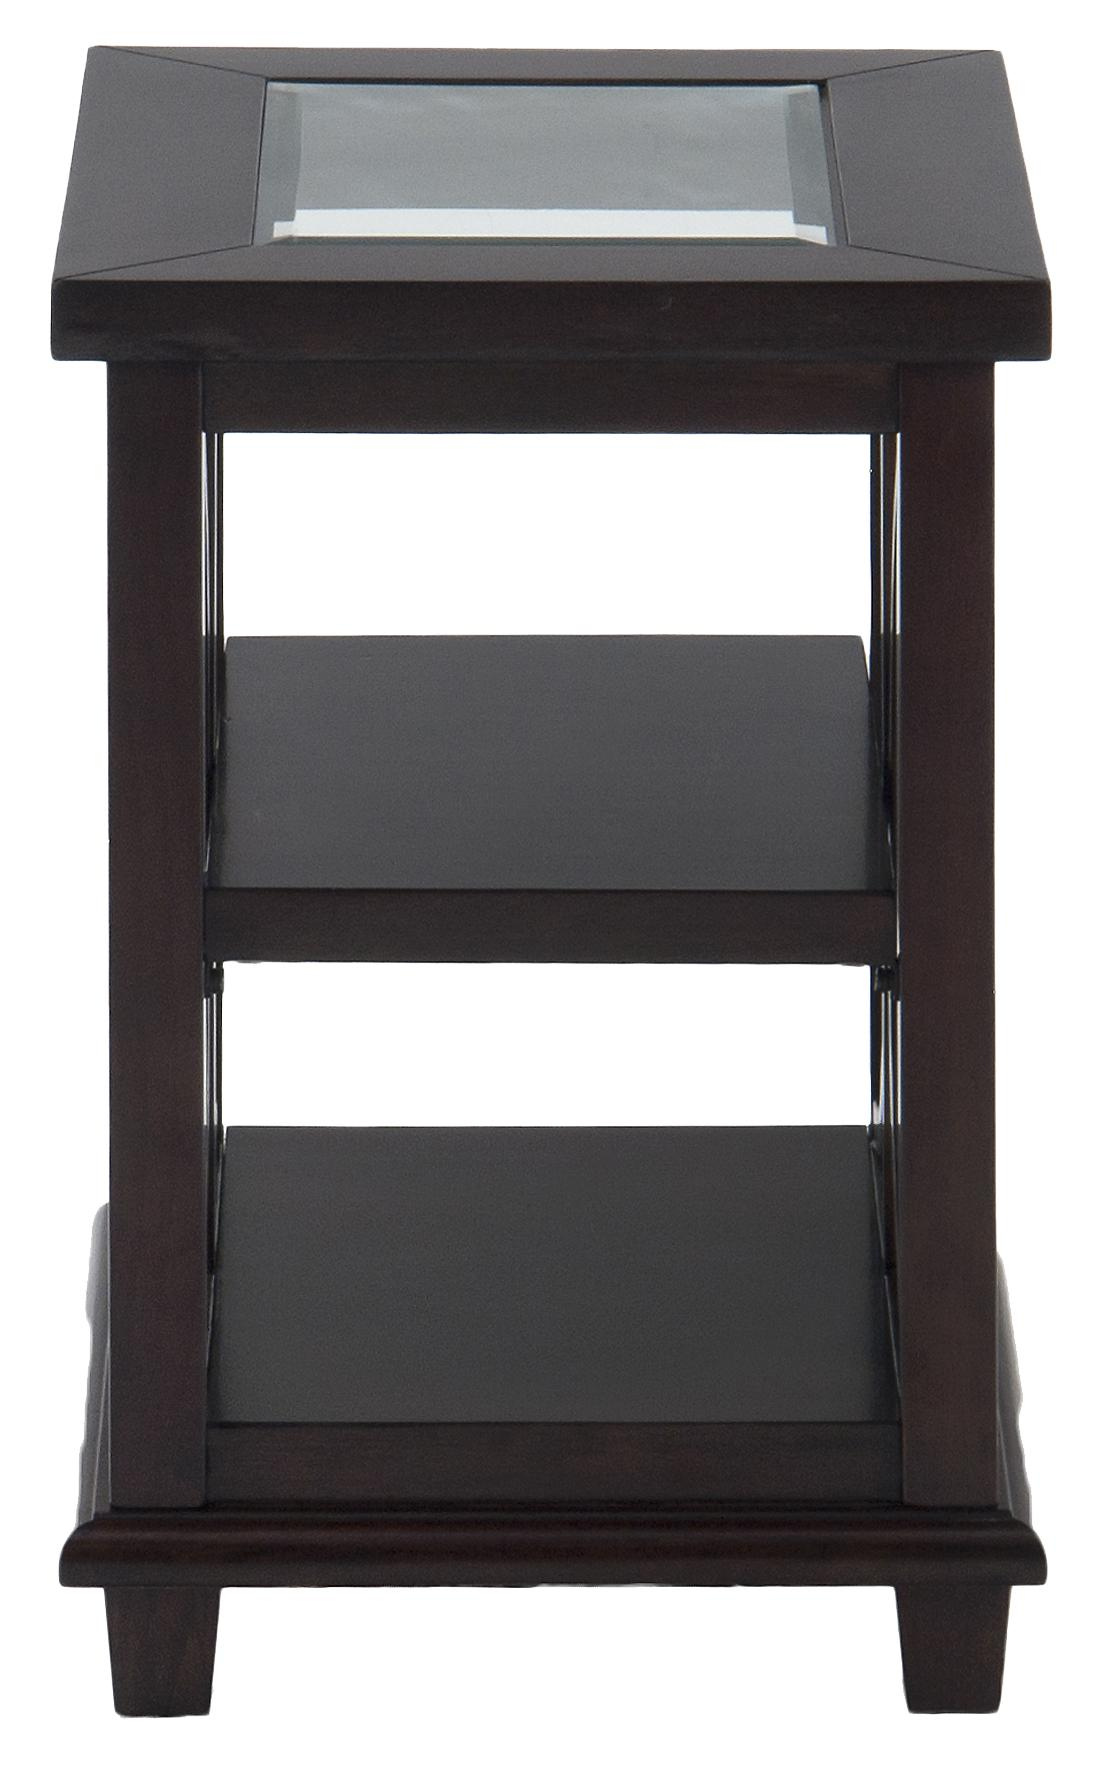 Panama Brown Chairside Table w/ Glass Top by Jofran at Gill Brothers Furniture